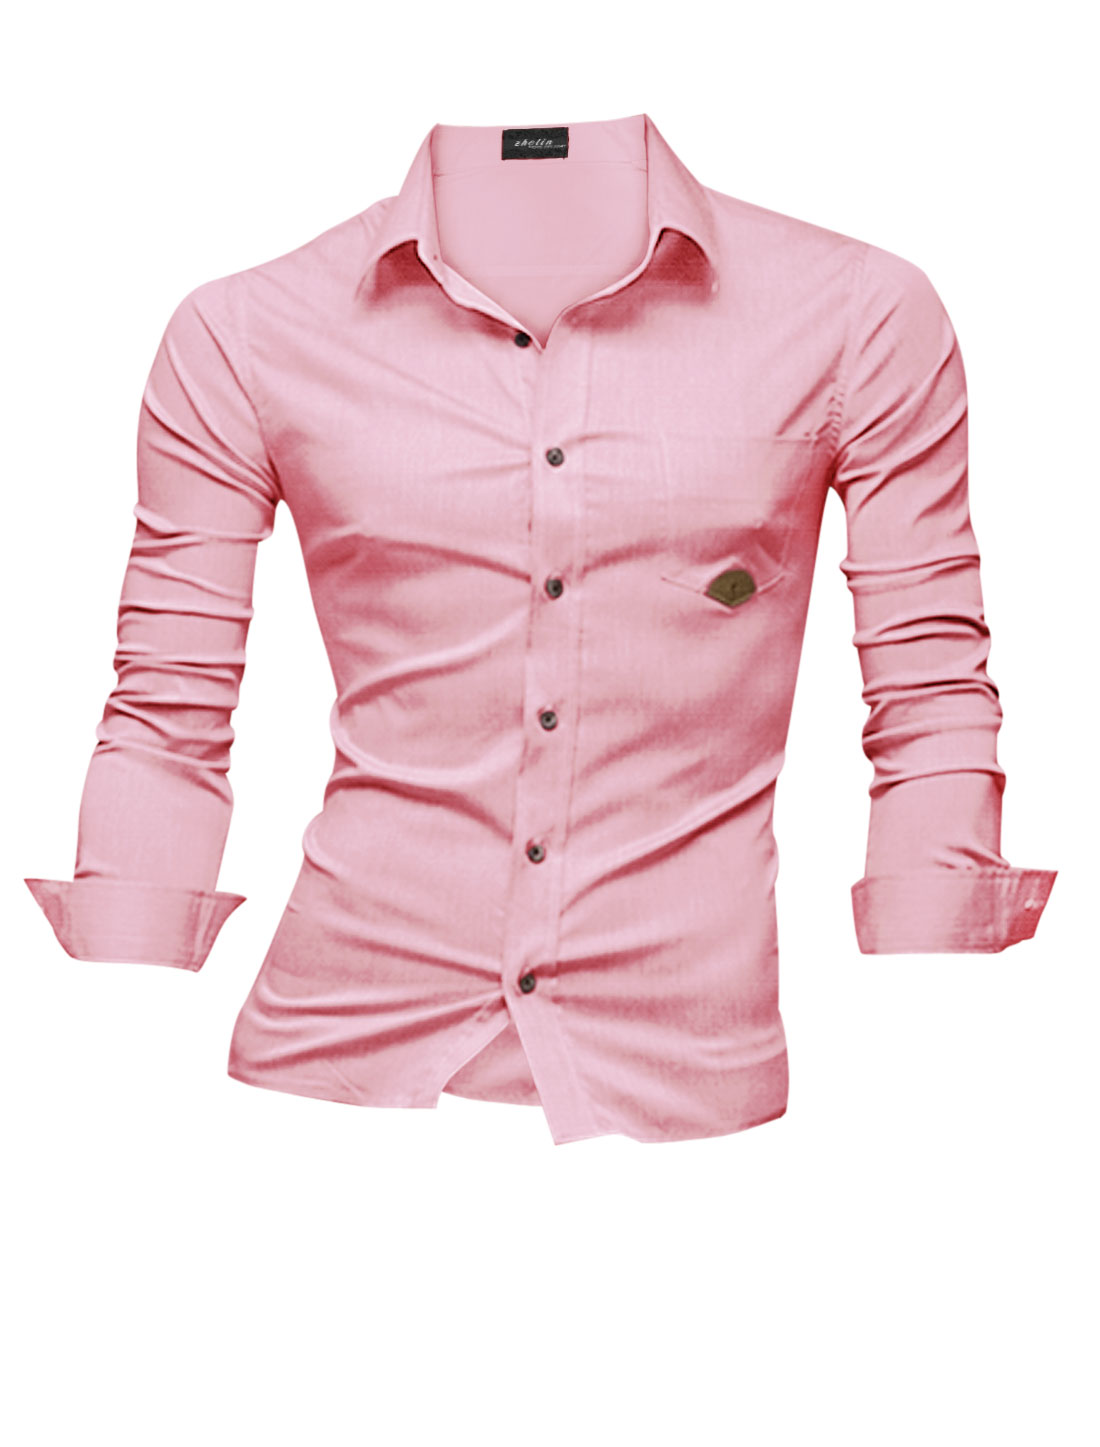 Men Casual Buttons Closed One Chest Pocket Button Down Shirt Pink M